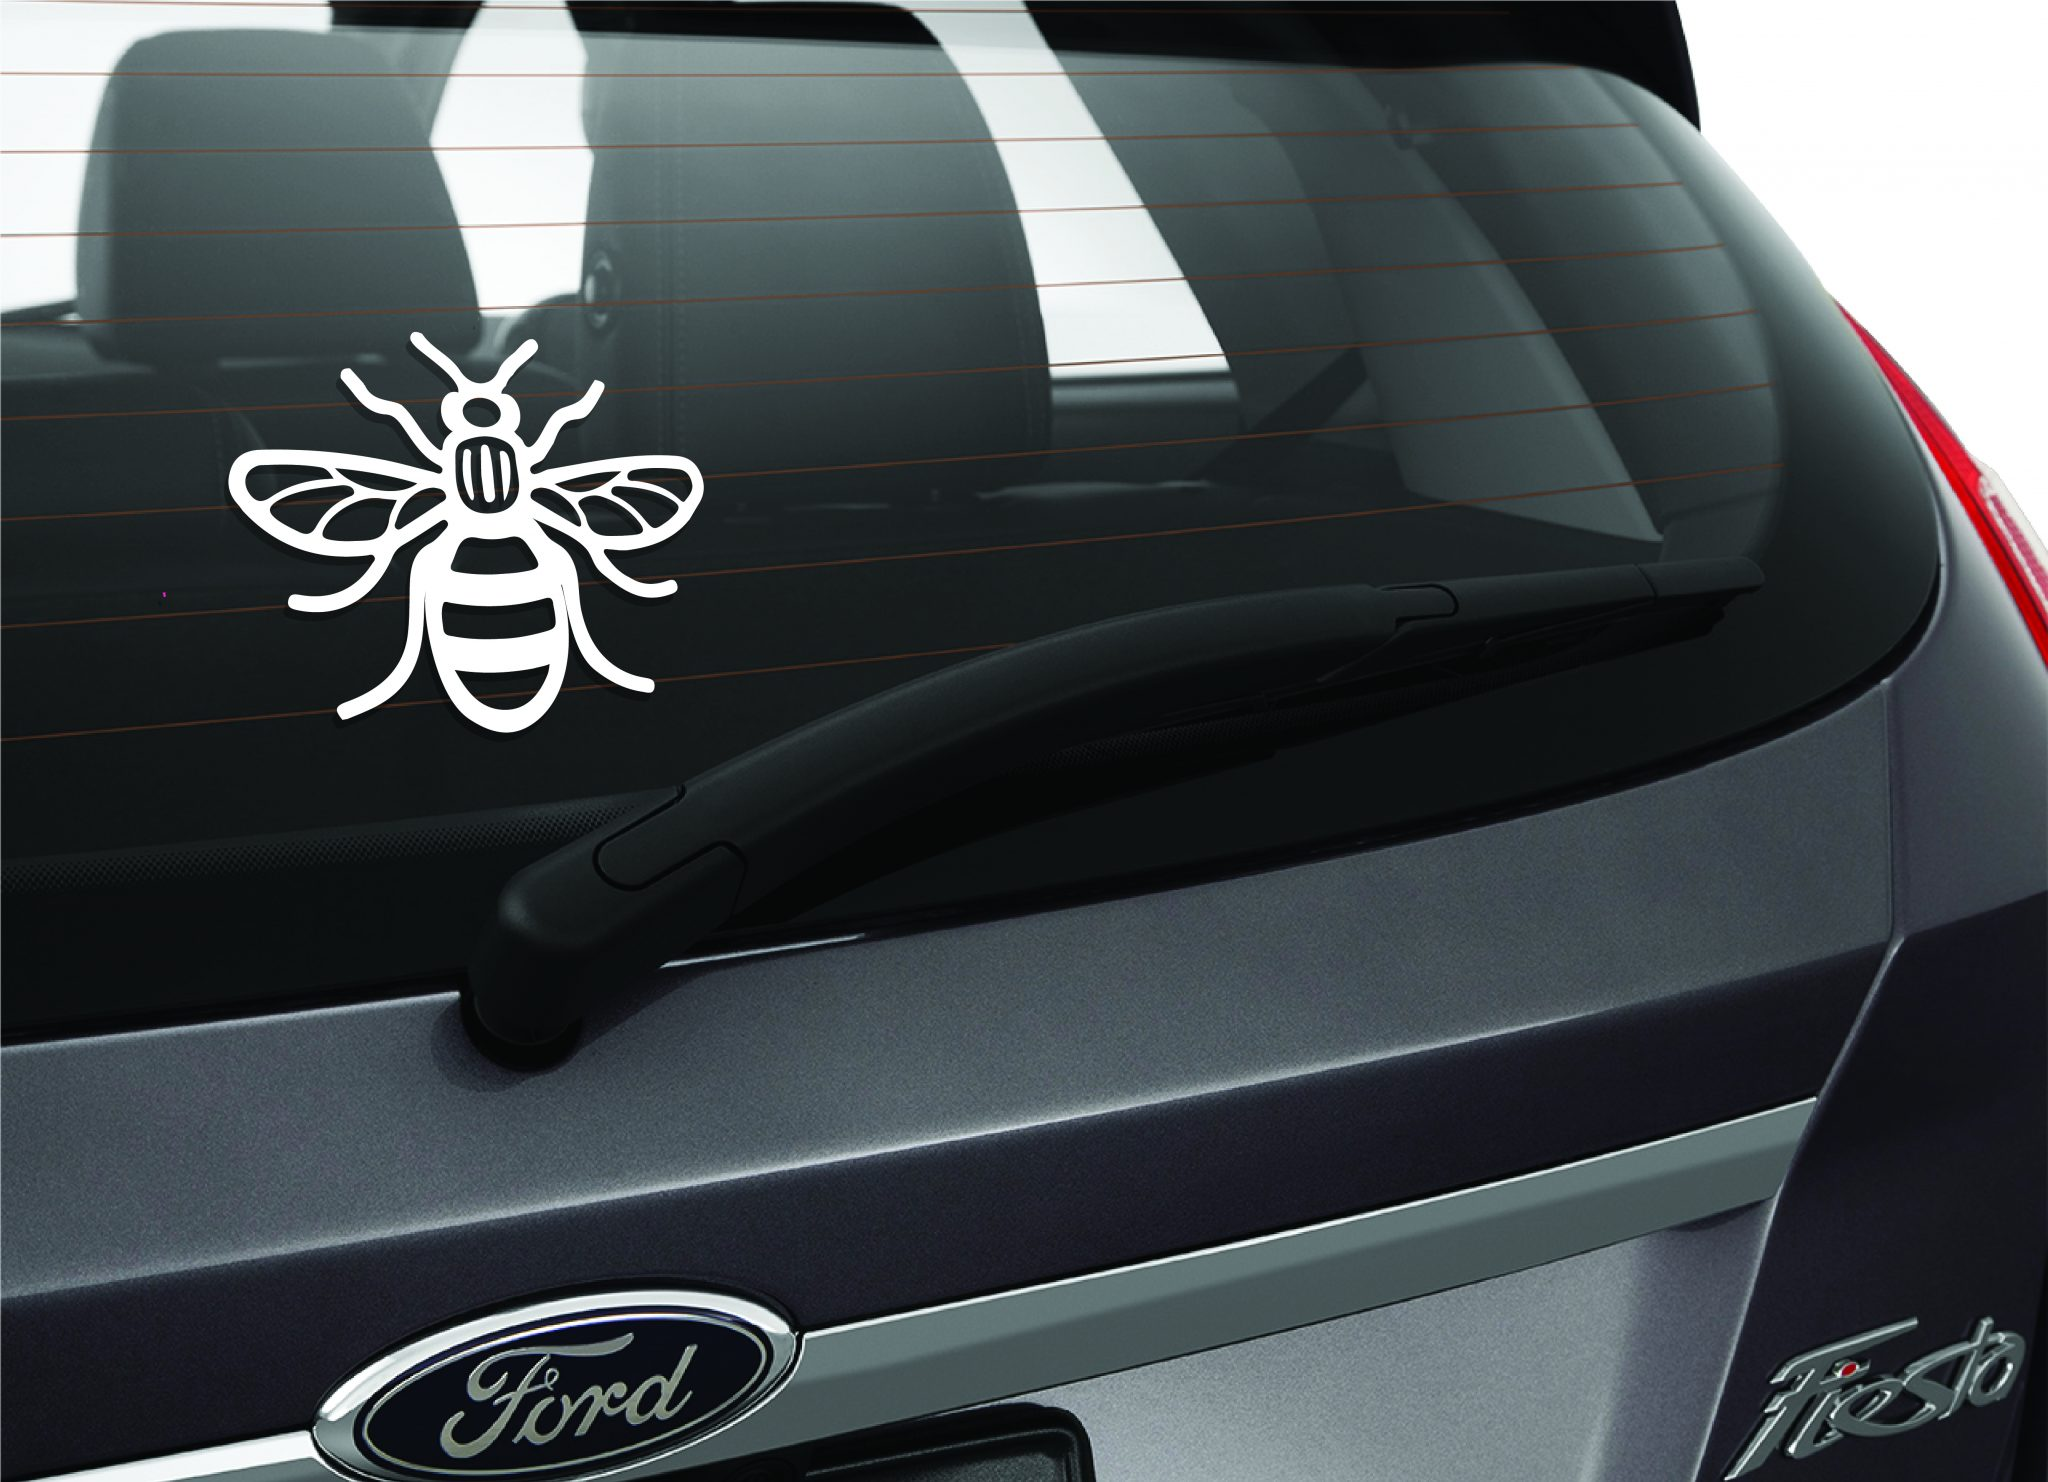 Manchester Bee Car Sticker Free Manchester Bee Car Stickers